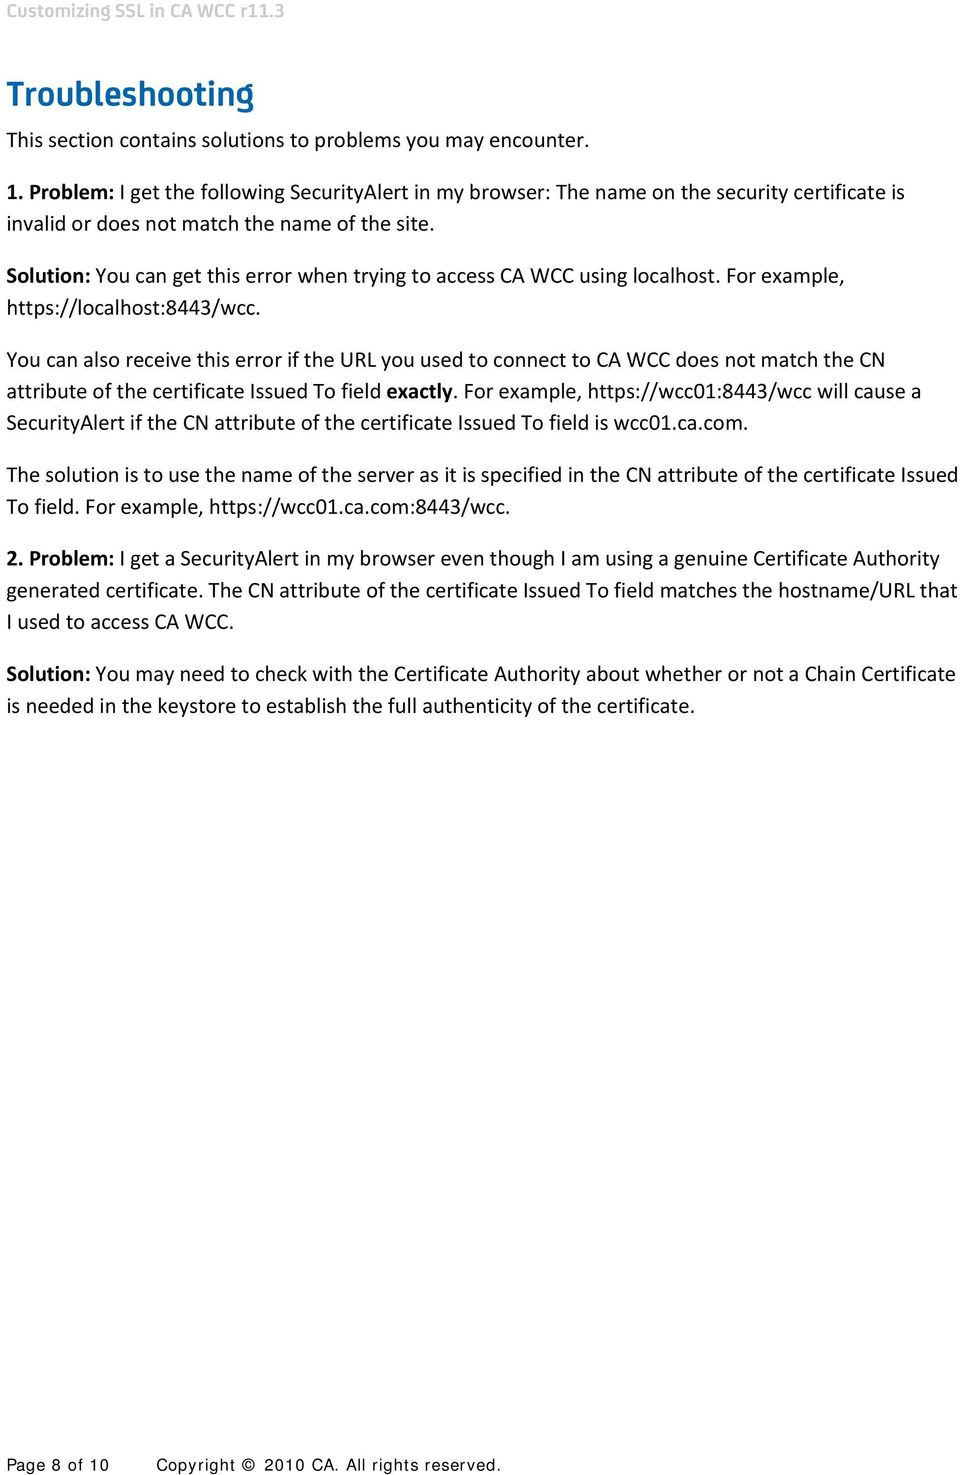 Customizing SSL in CA WCC r11 3 This document contains